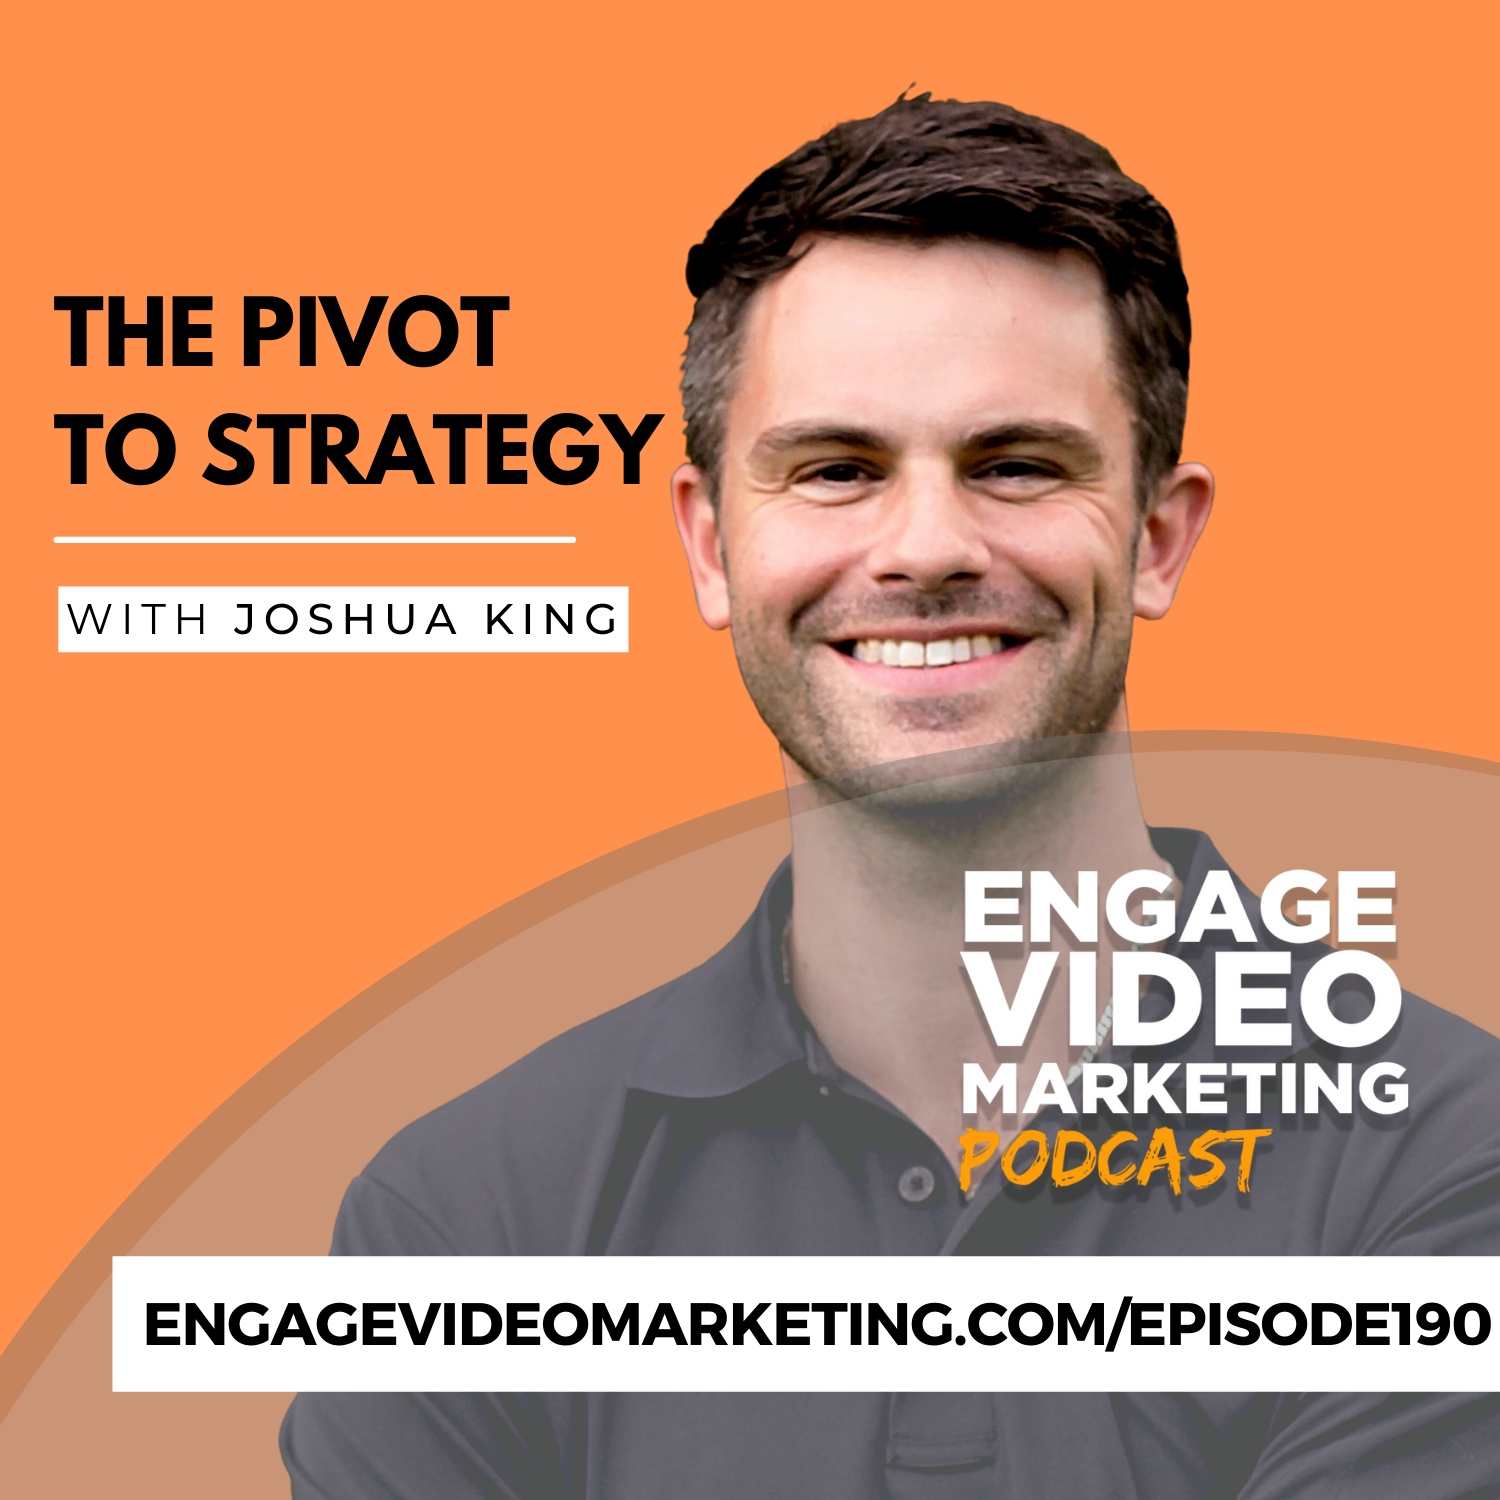 The Pivot to Strategy with Joshua King